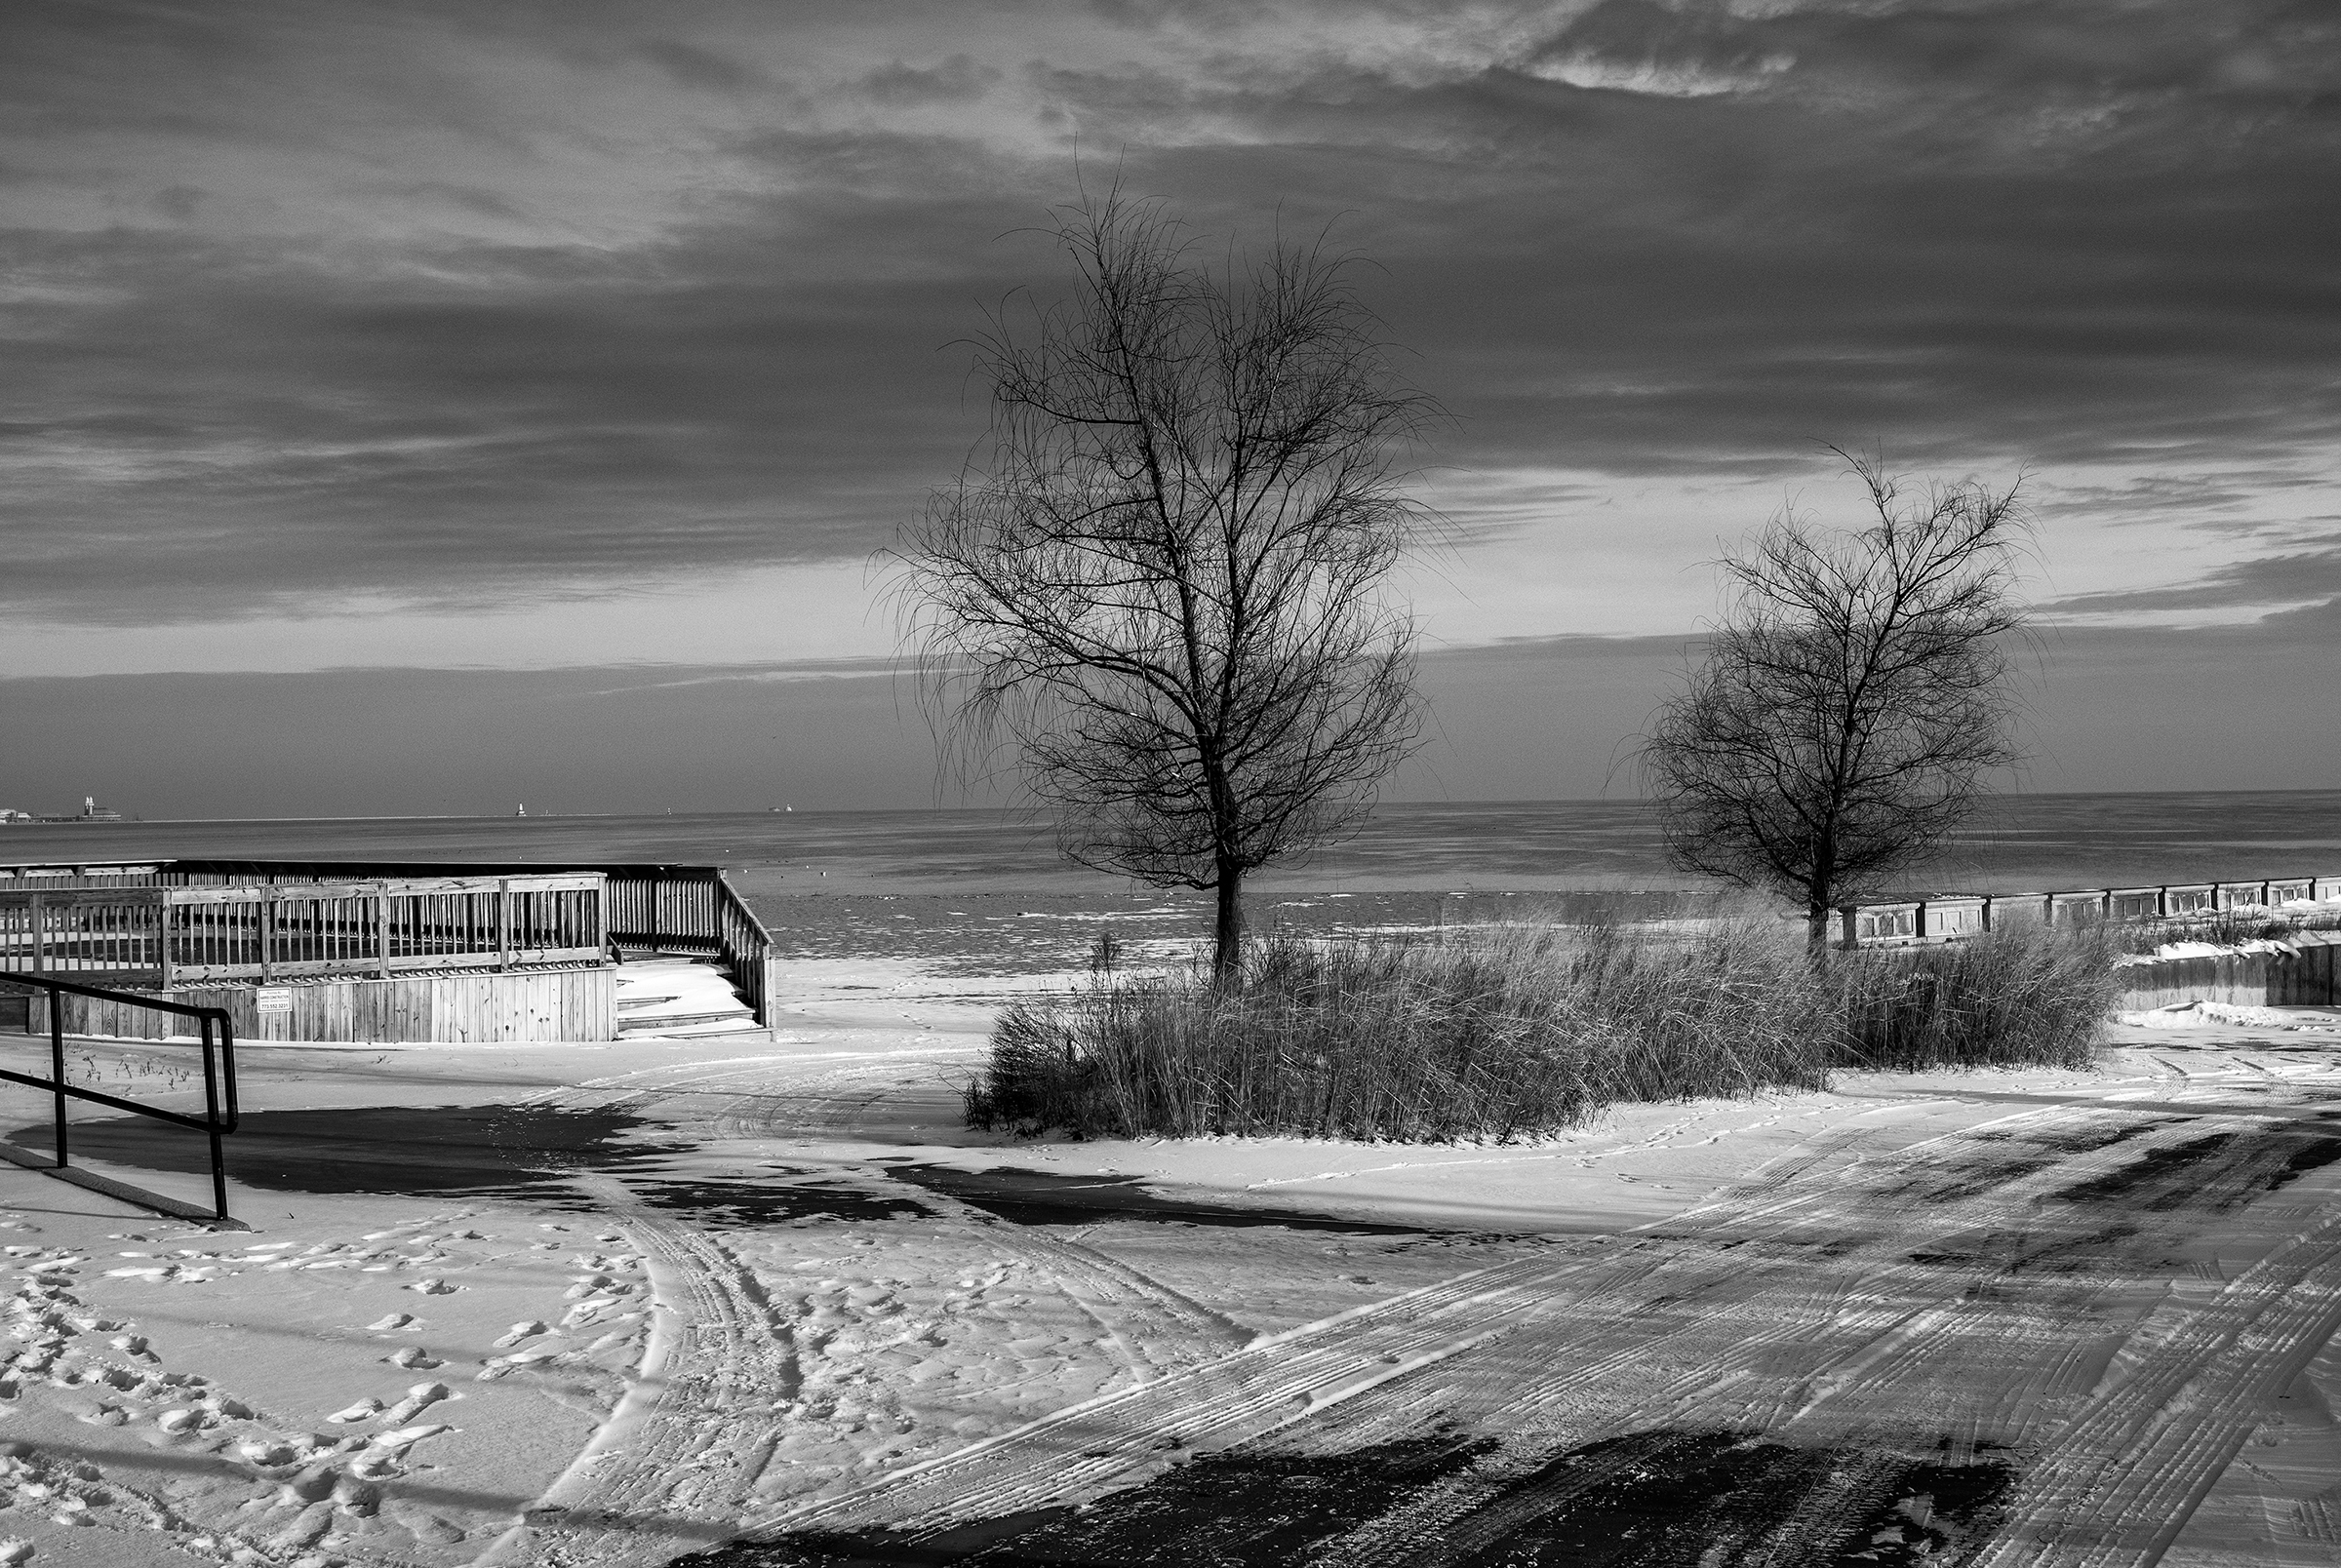 Evidence of Humans on the Winter Morning on the Lake